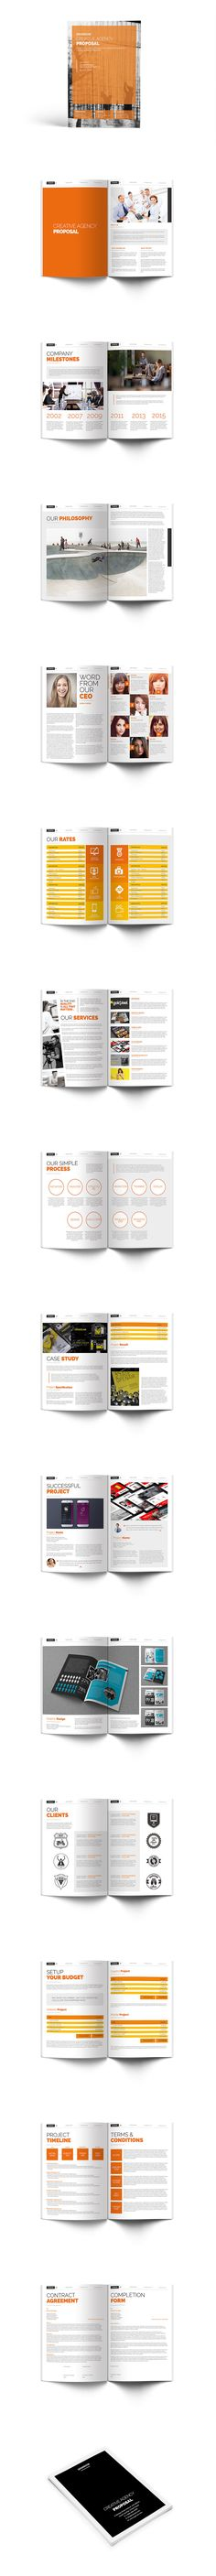 Proposal Brochure Template InDesign INDD - US Letter Size - proposals templates